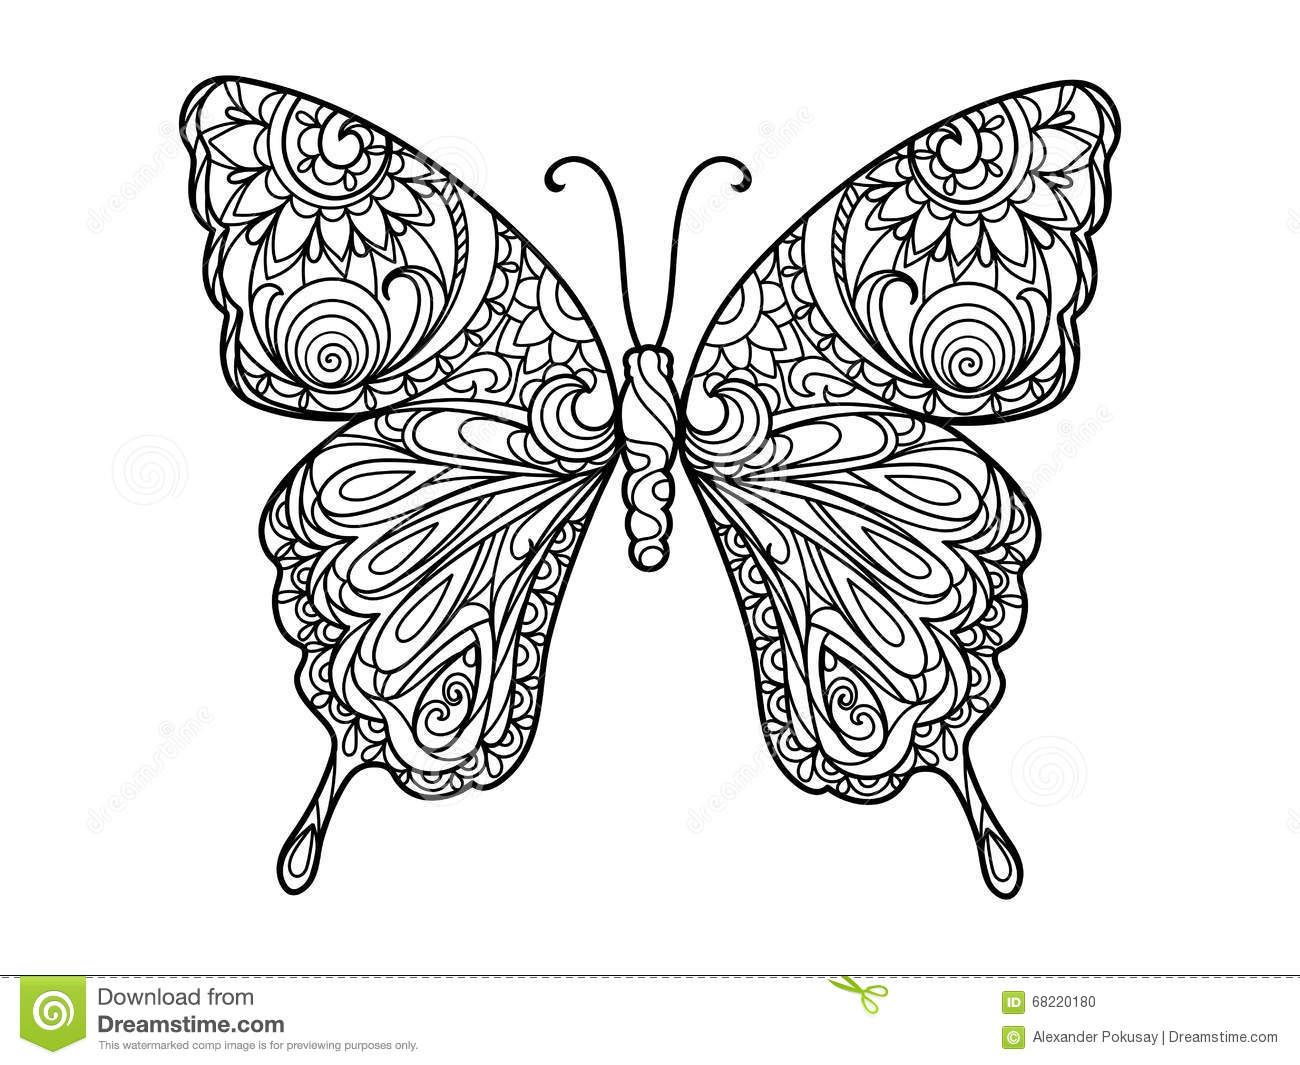 Pin by Dreamstime Stock Photos on Coloring pages, start creating ...